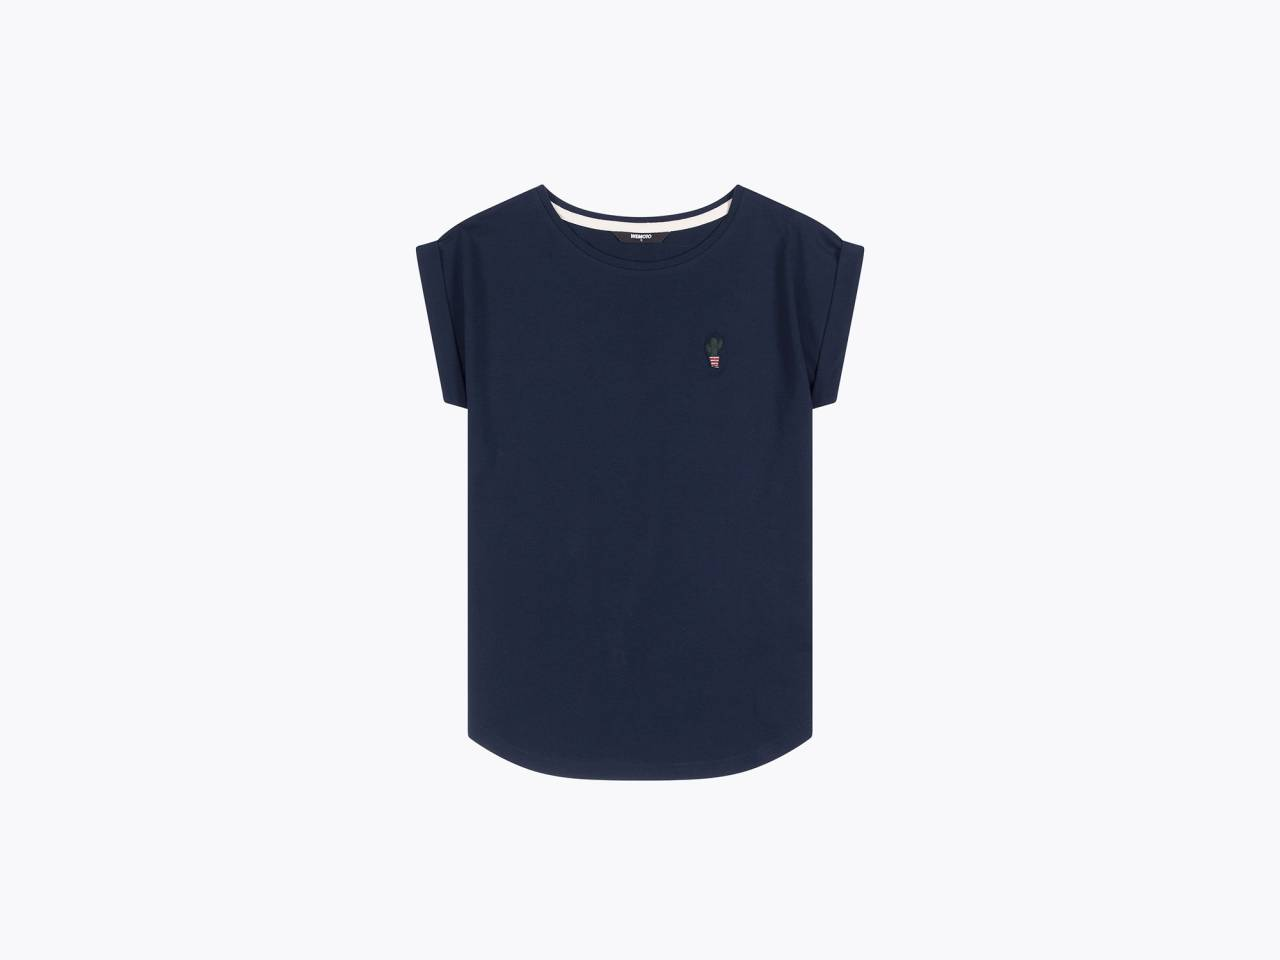 wemoto idle t-shirt navy blue